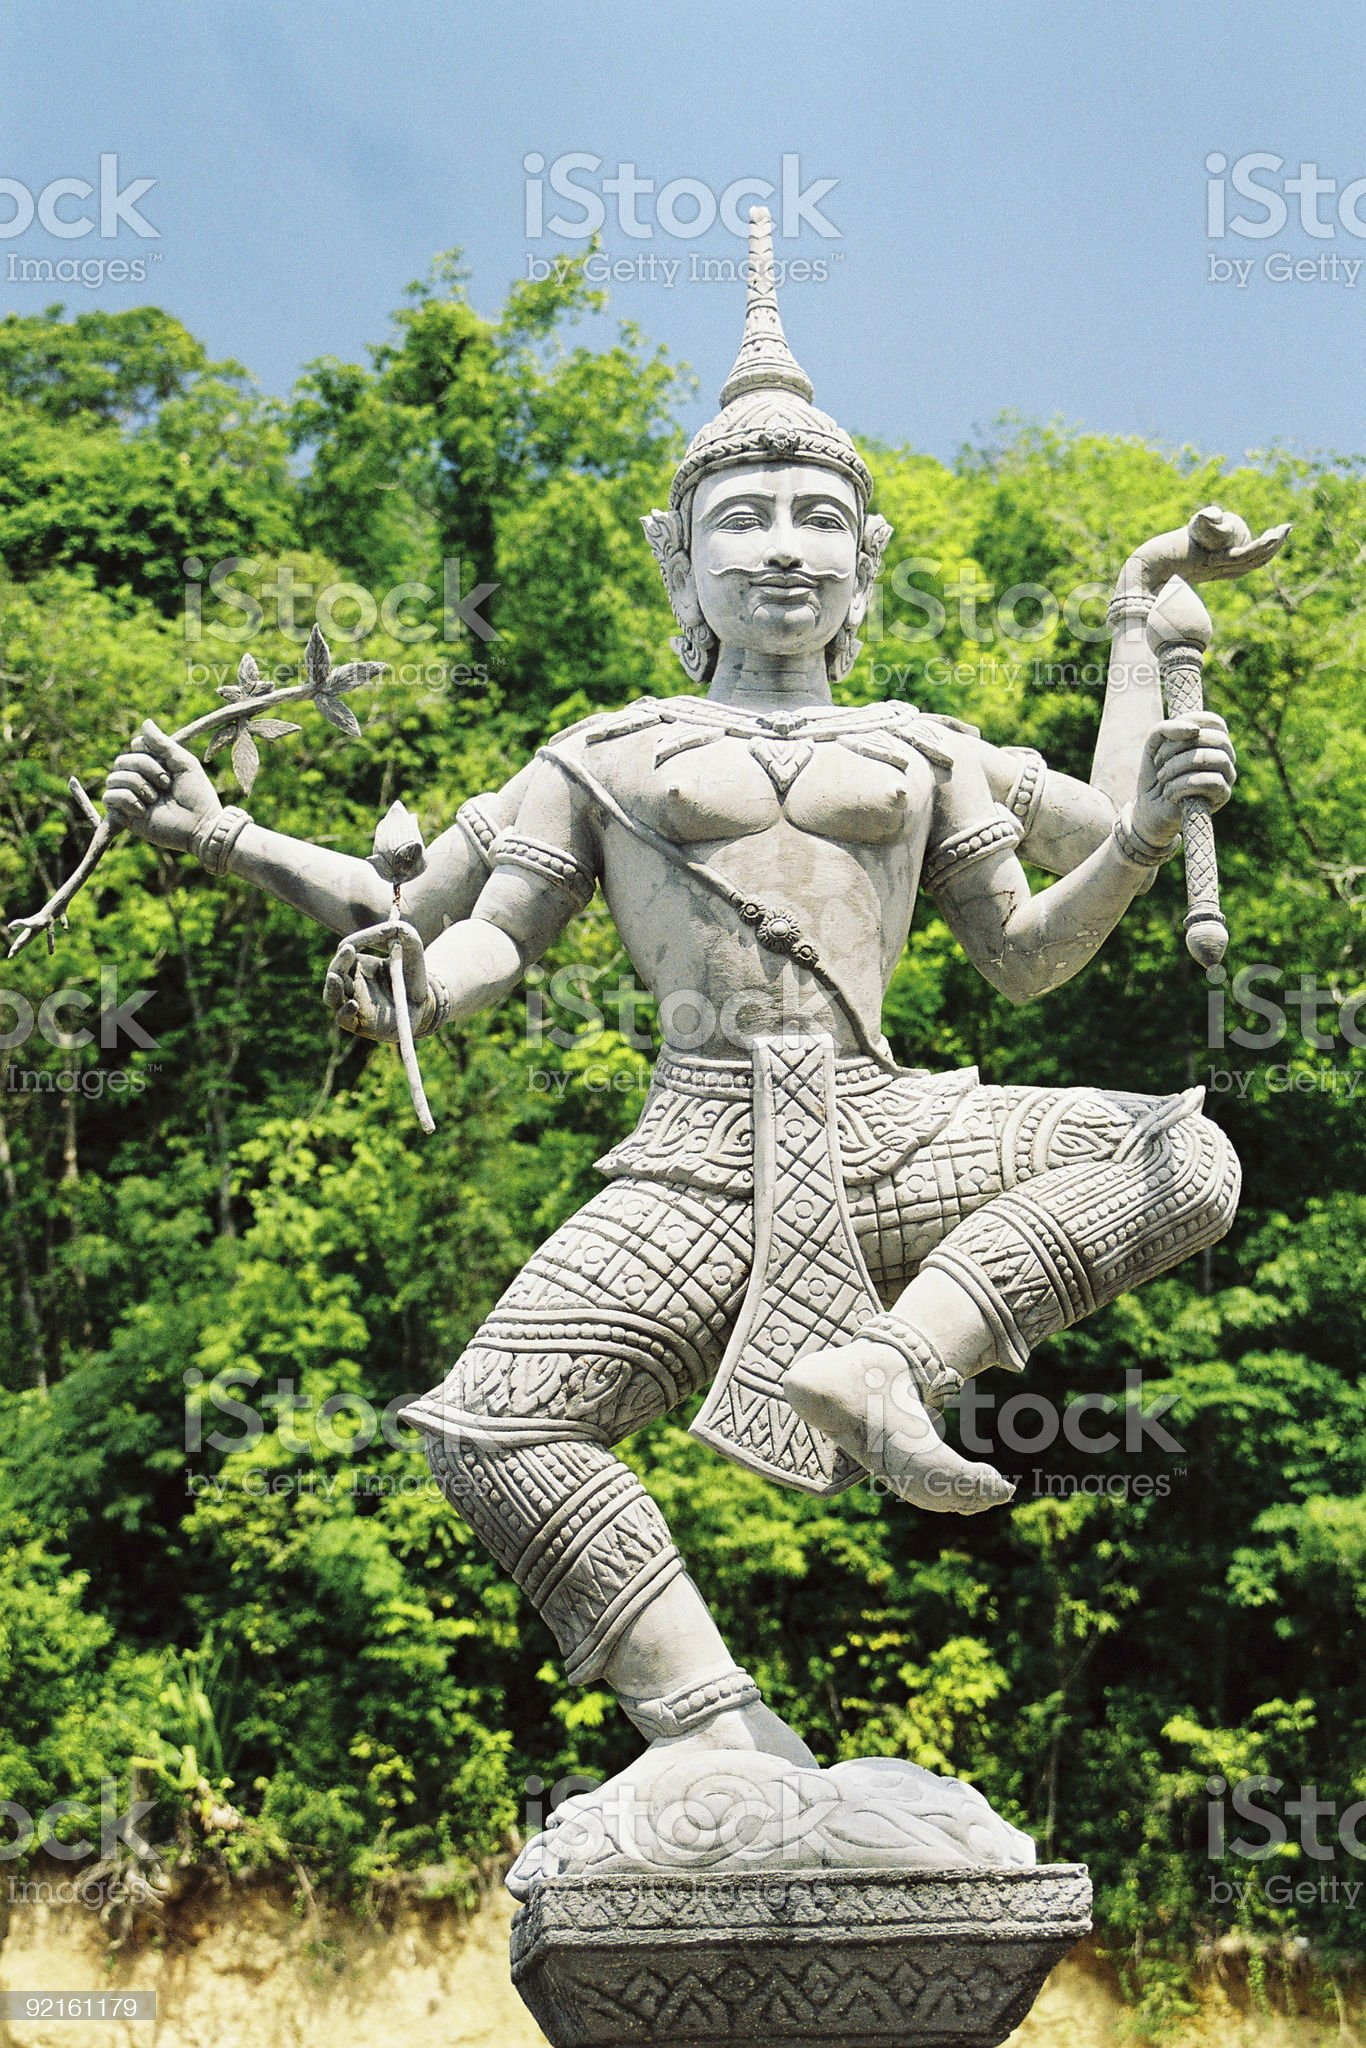 Shiva's Statue royalty-free stock photo